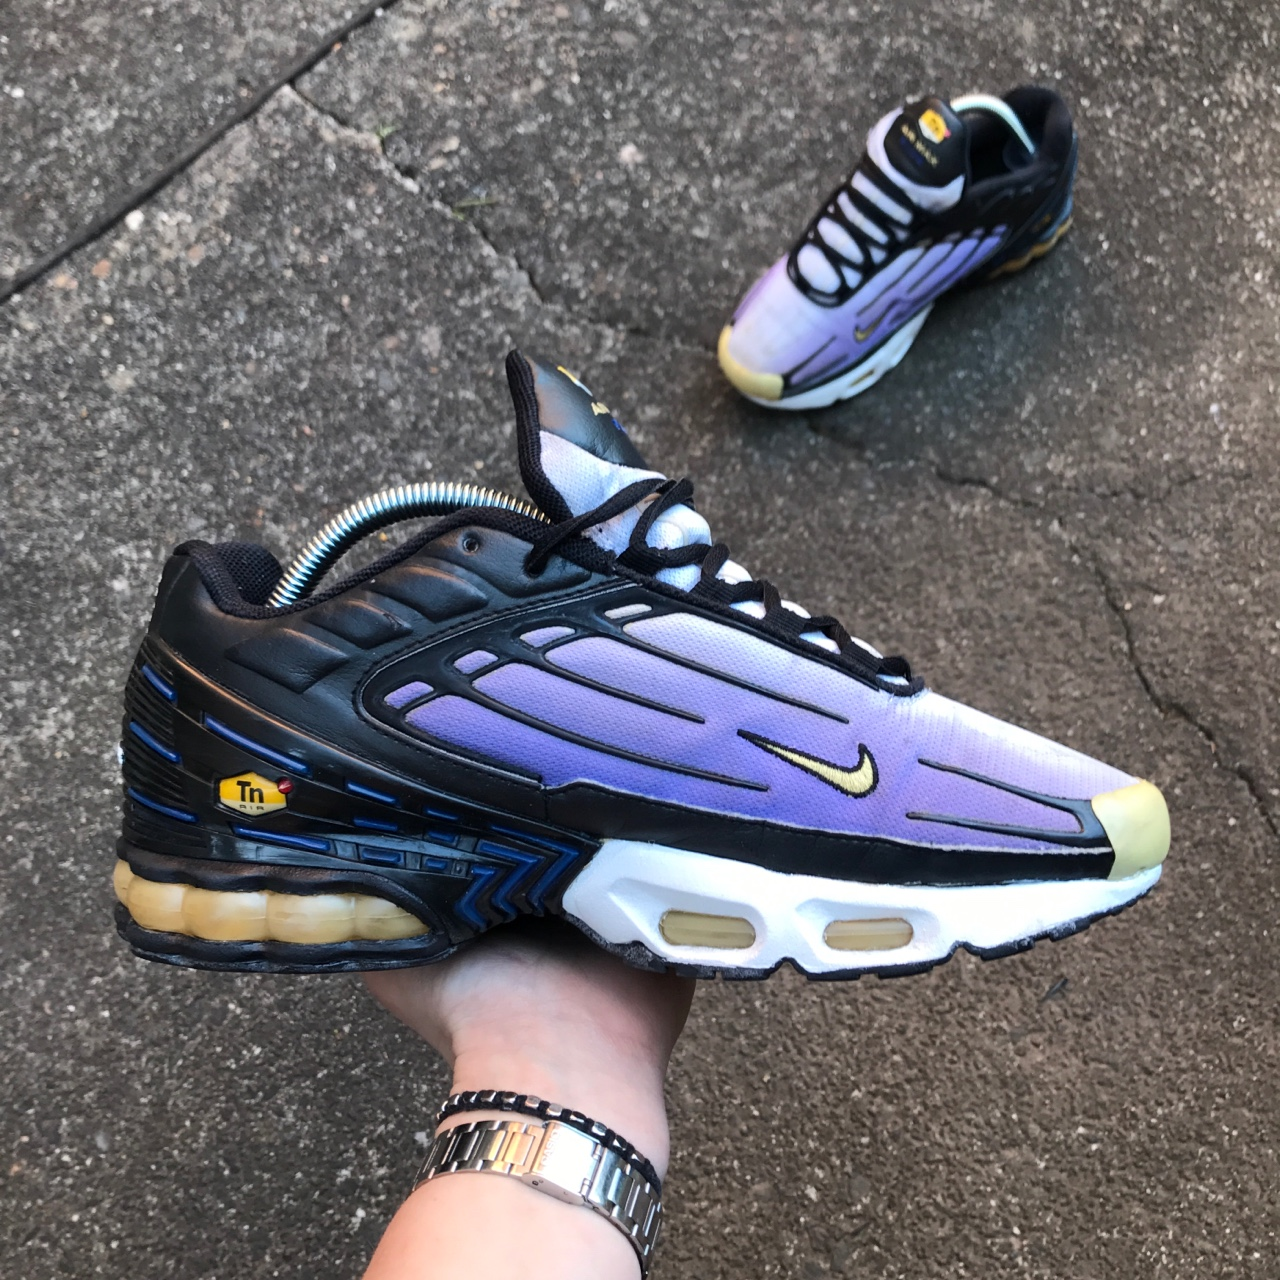 2006 Nike Tuned TN Air Max Plus III Hyper Blue /... - Depop